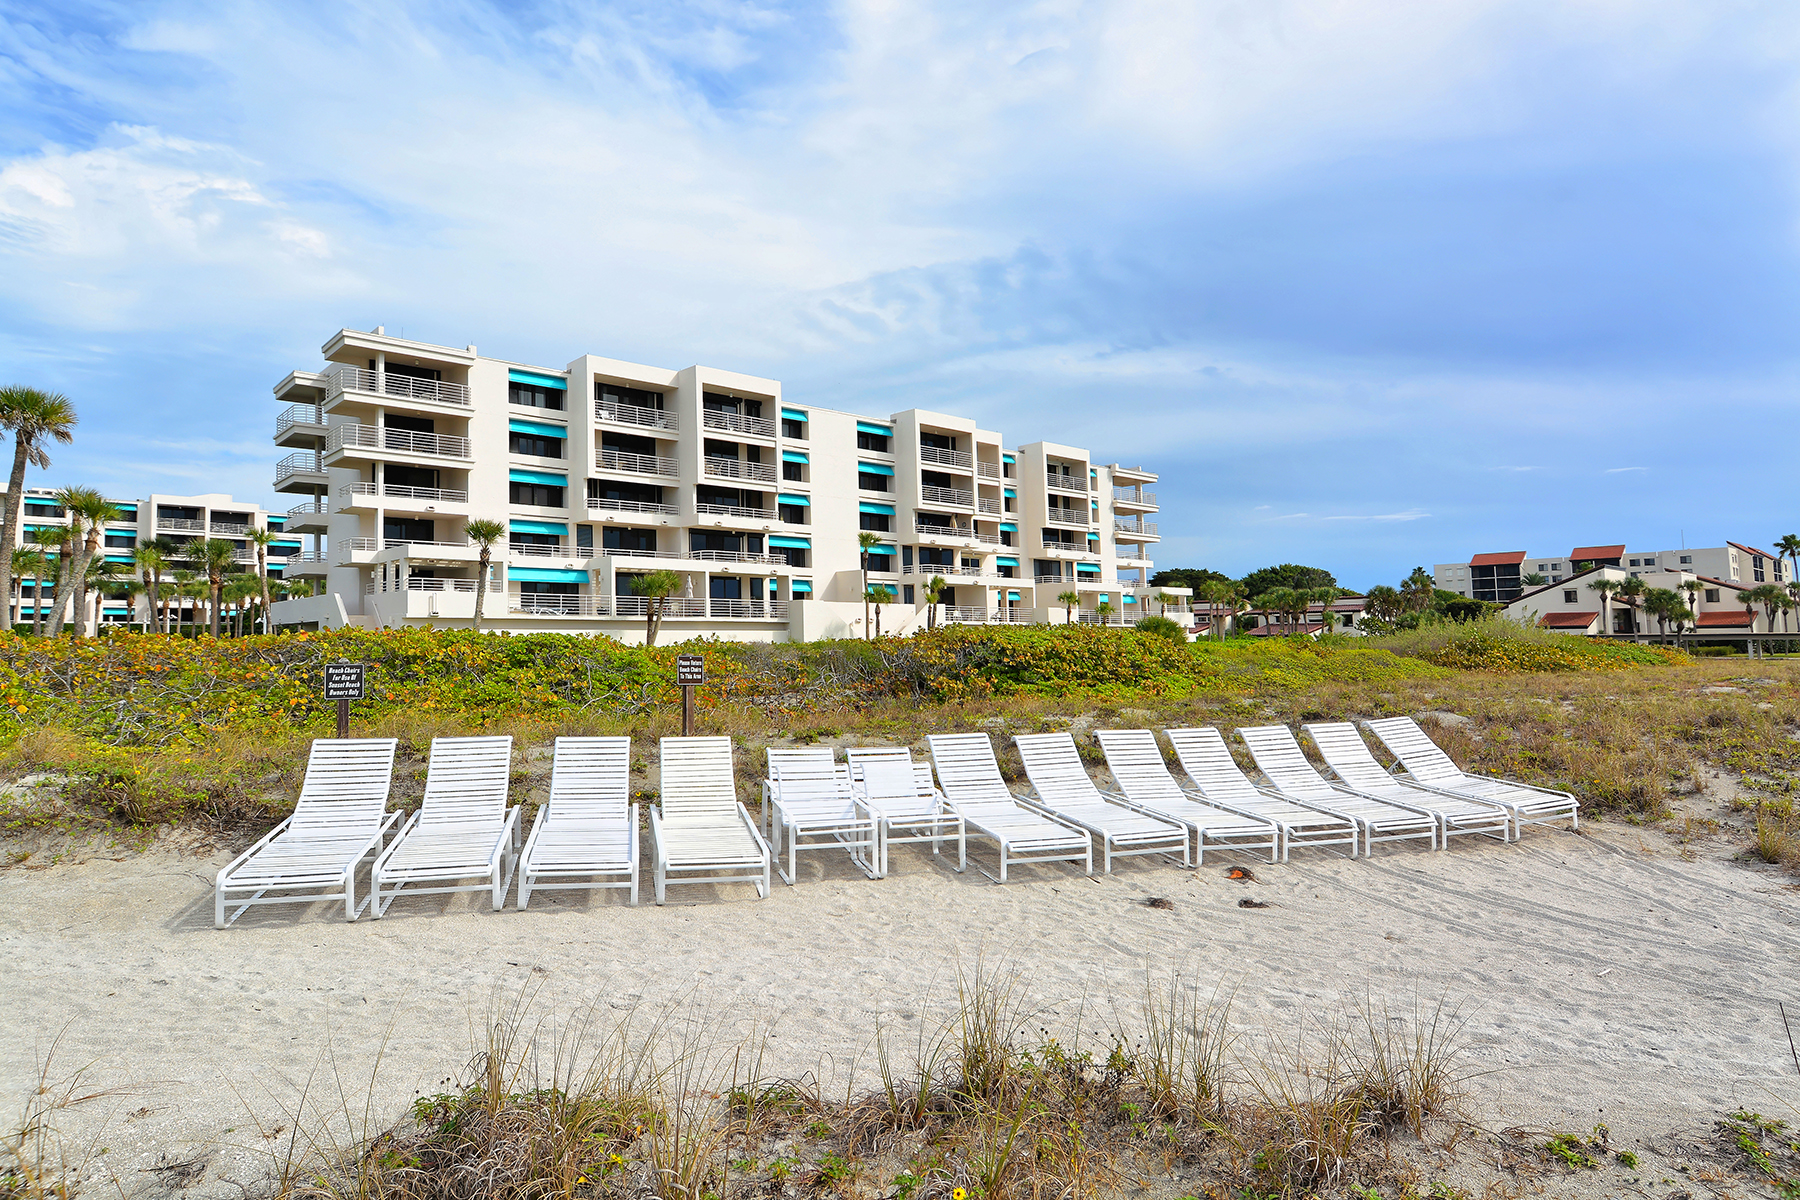 Condominium for Sale at SUNSET BEACH-LONGBOAT KEY 2105 Gulf Of Mexico Dr 3204 Longboat Key, Florida, 34228 United States